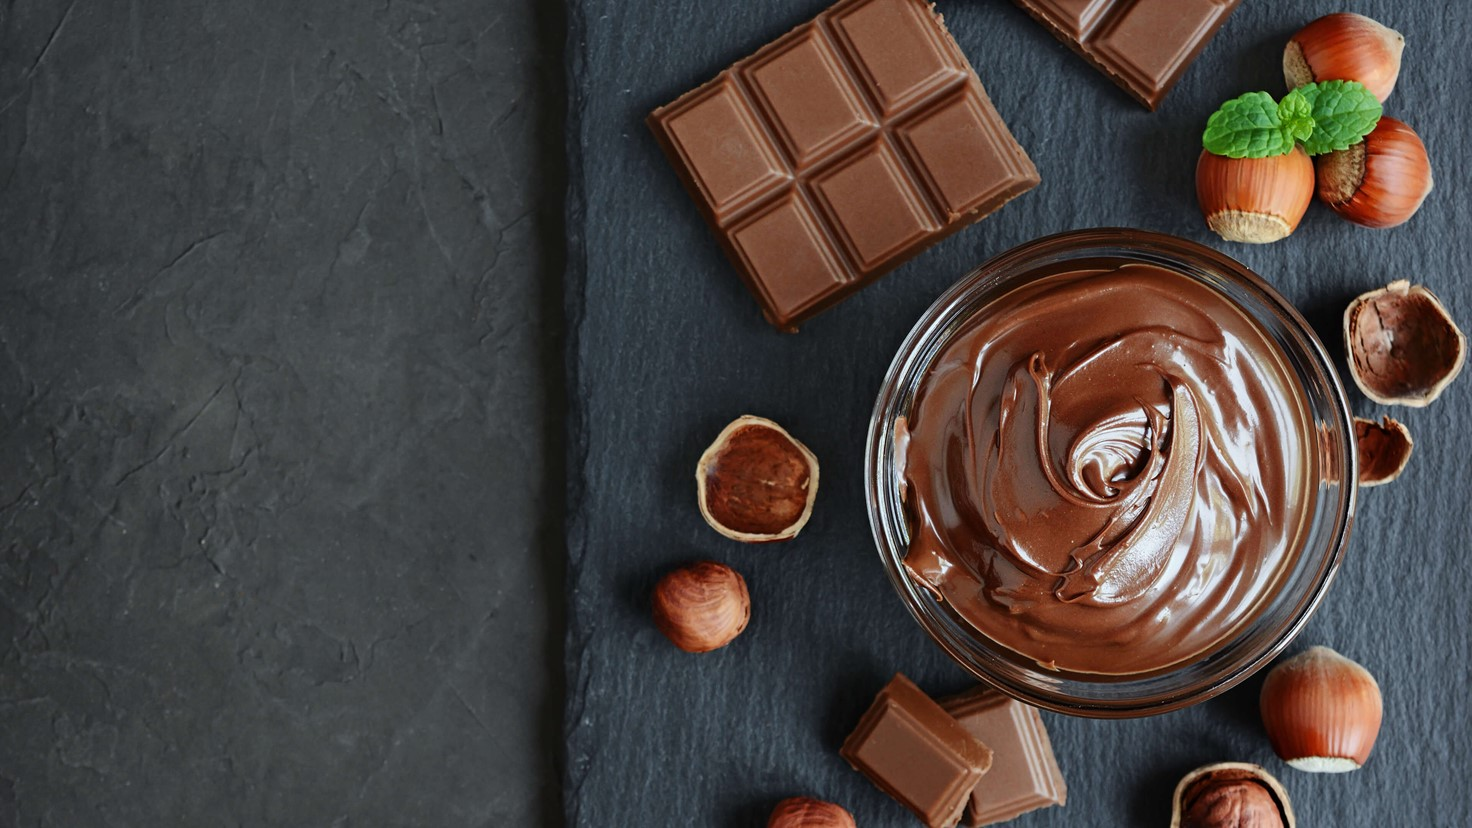 Palsgaard Oil Binders Deliver Shelf Stable Chocolate Spreads